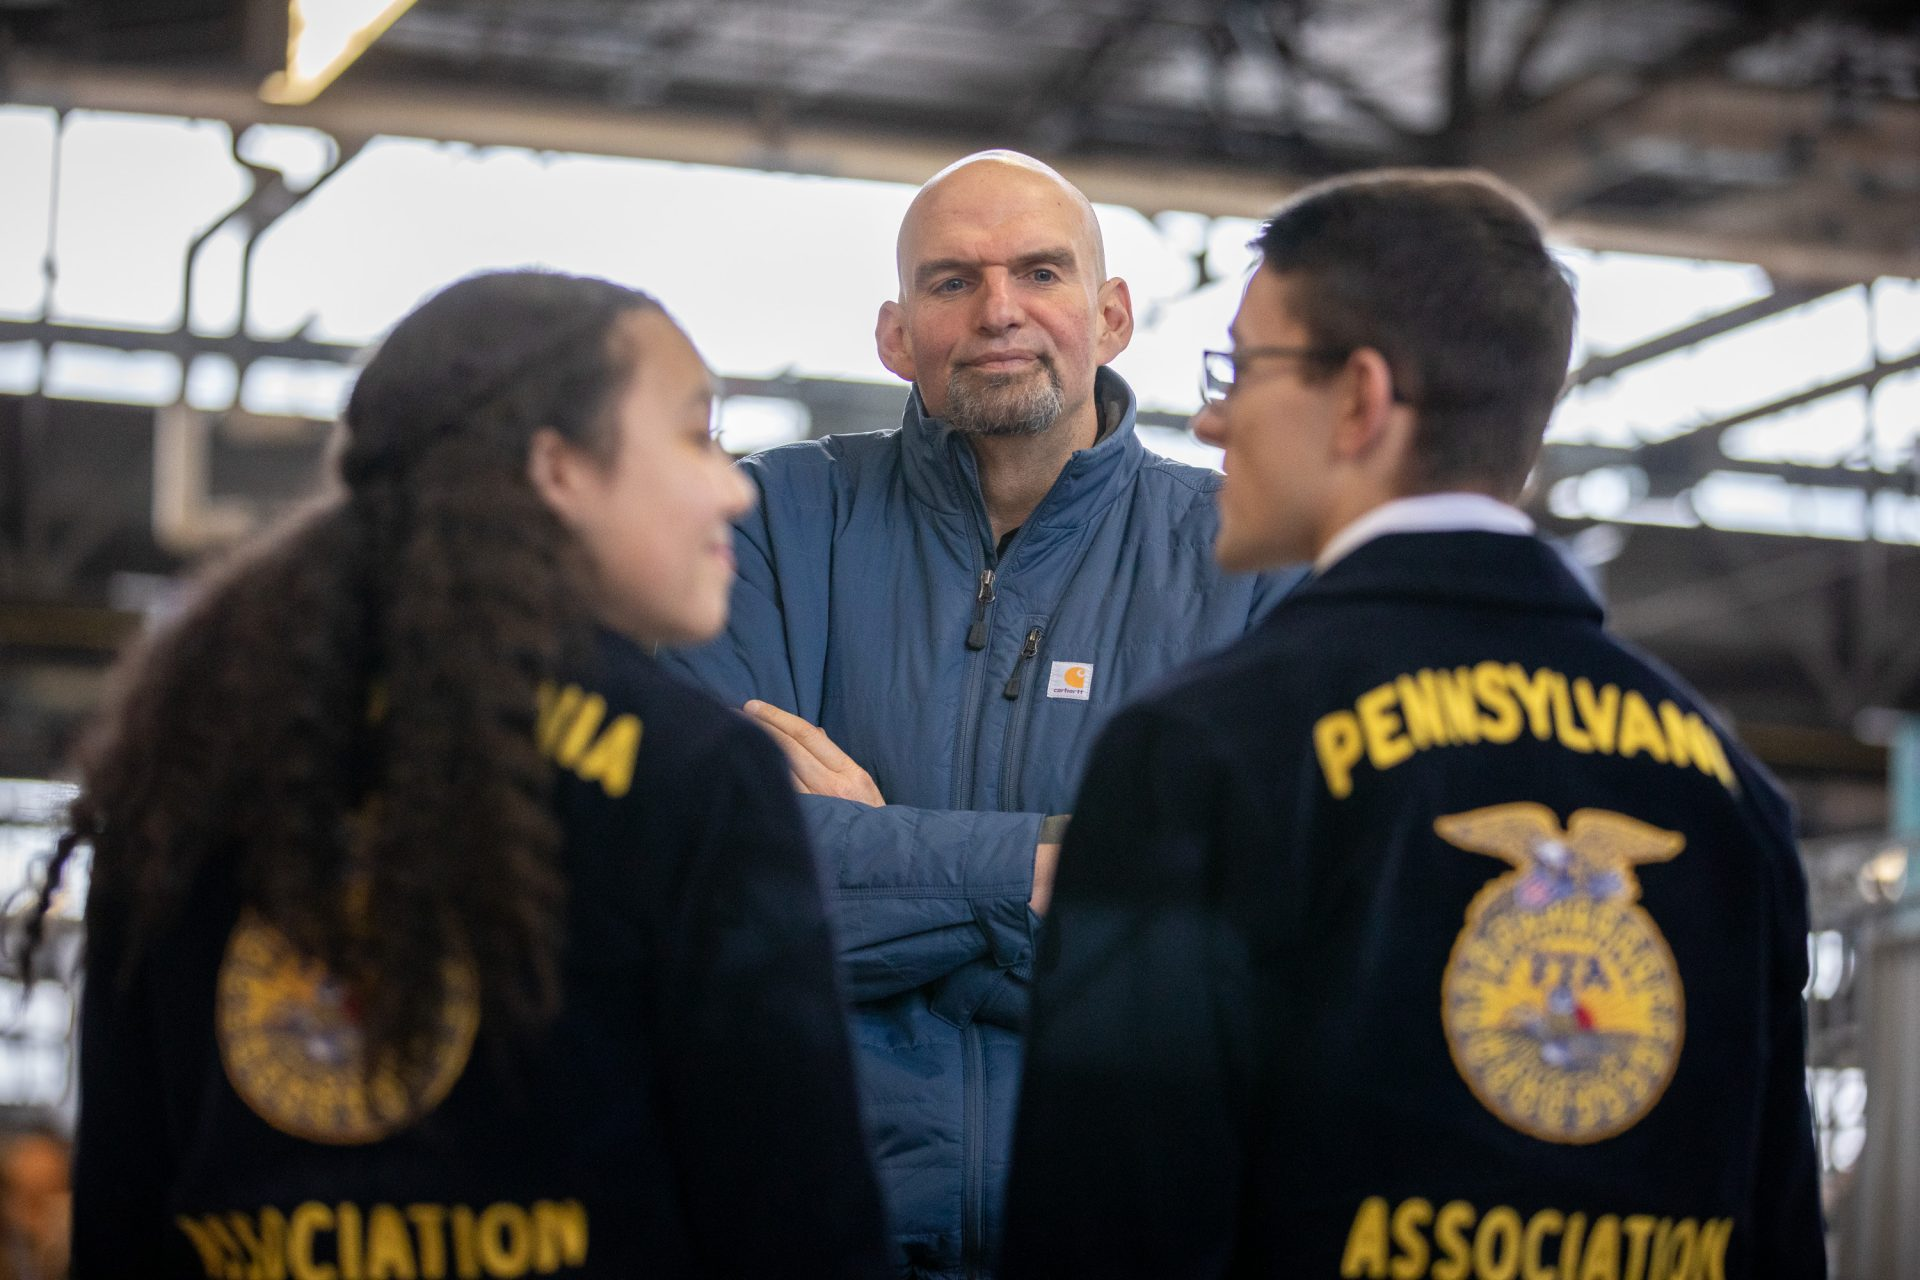 Lt. Governor John Fetterman speaks to Pennsylvania FFA members atthe unveiling of the 2020 Pennsylvania Farm Show butter sculpture on Jan. 2, 2020